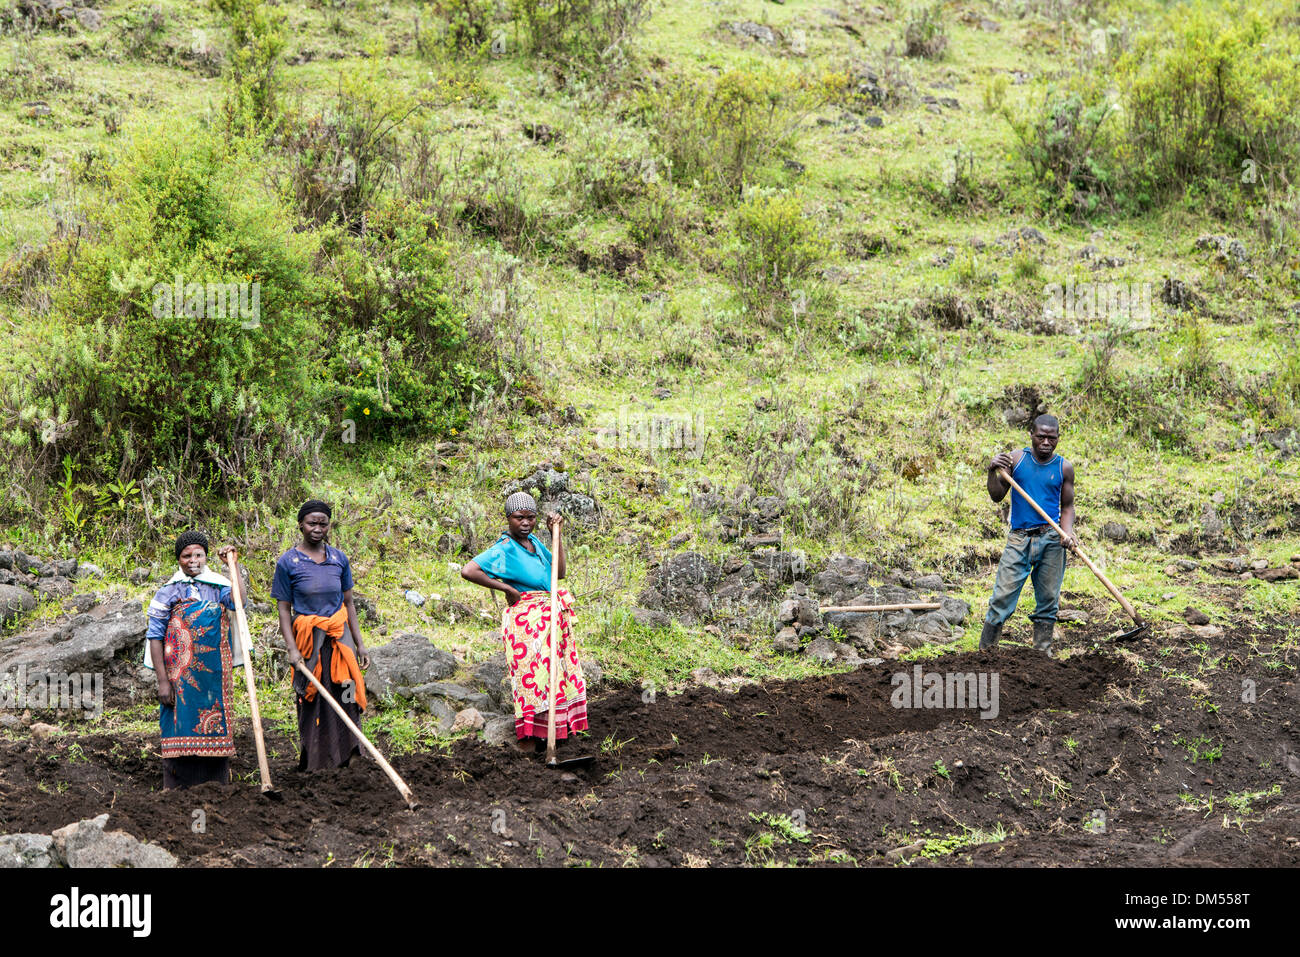 People working in the fields Volcanoes National Park Rwanda Africa - Stock Image